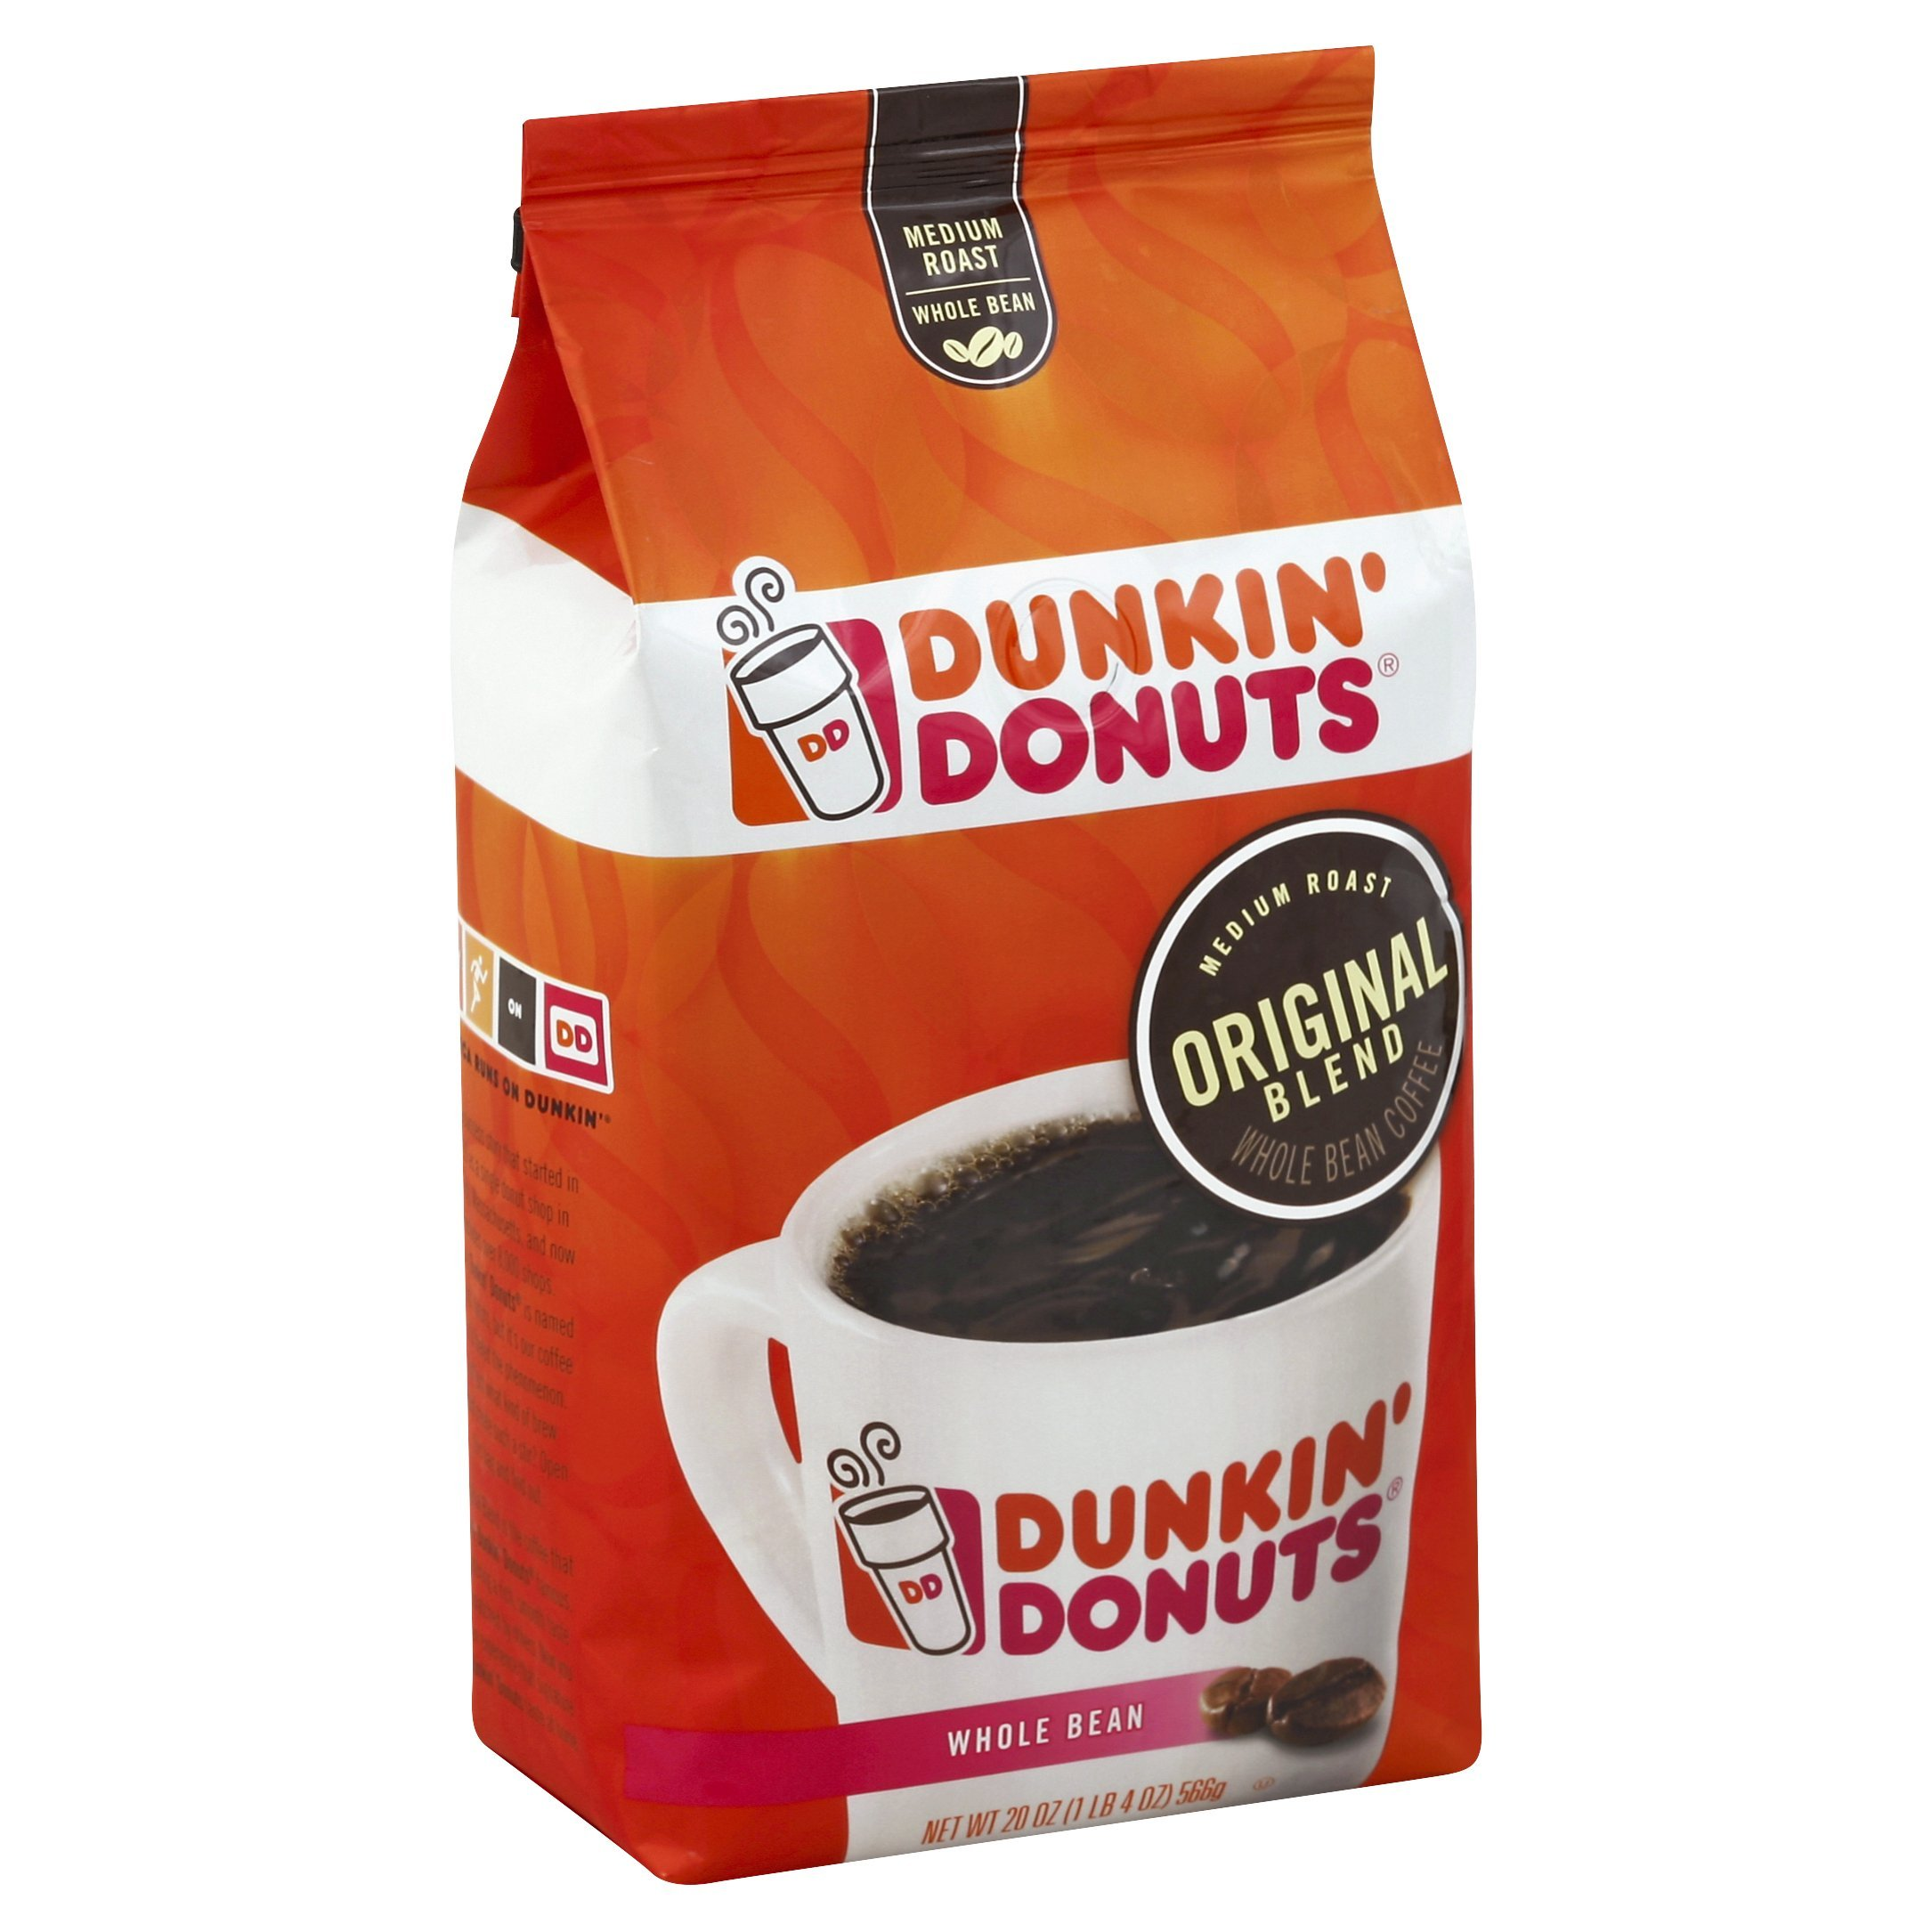 Dunkin' Donuts Original Blend Whole Bean Coffee, Medium Roast, 20 Ounces (Pack of 6) by Dunkin'